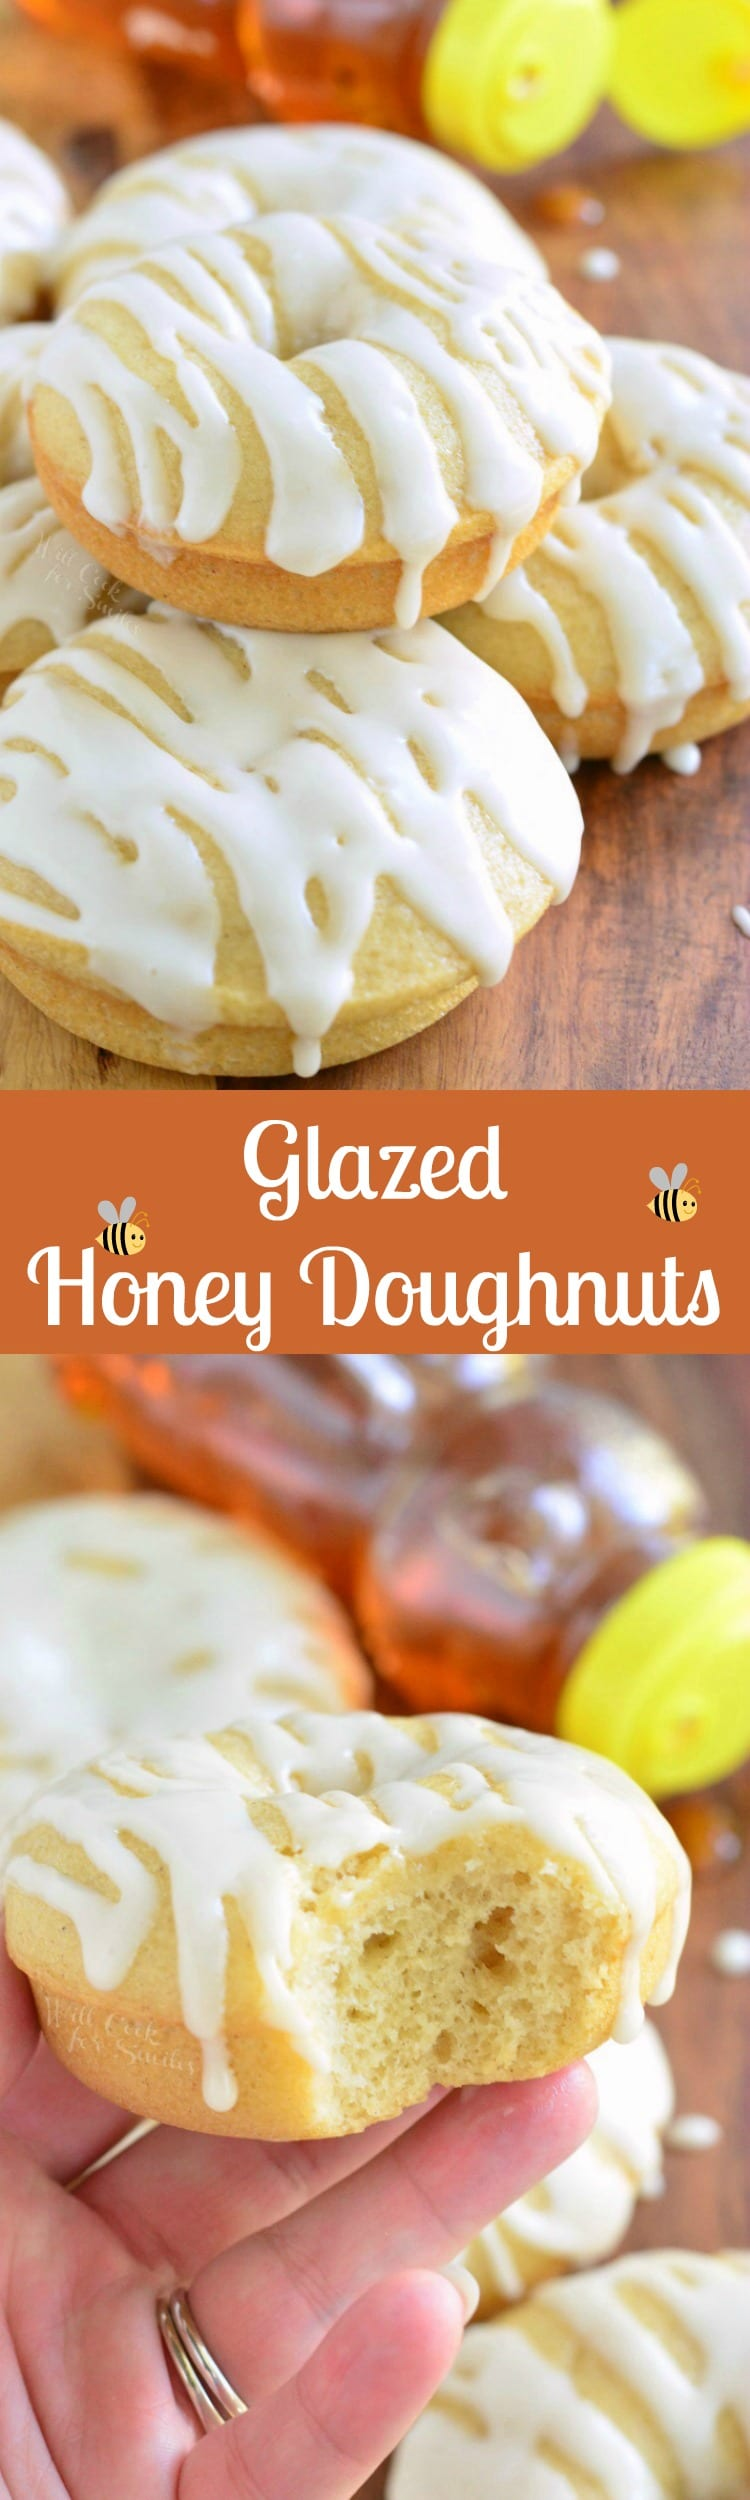 Honey Doughnuts. These honey doughnuts are baked and glazed with a creamy honey glaze.